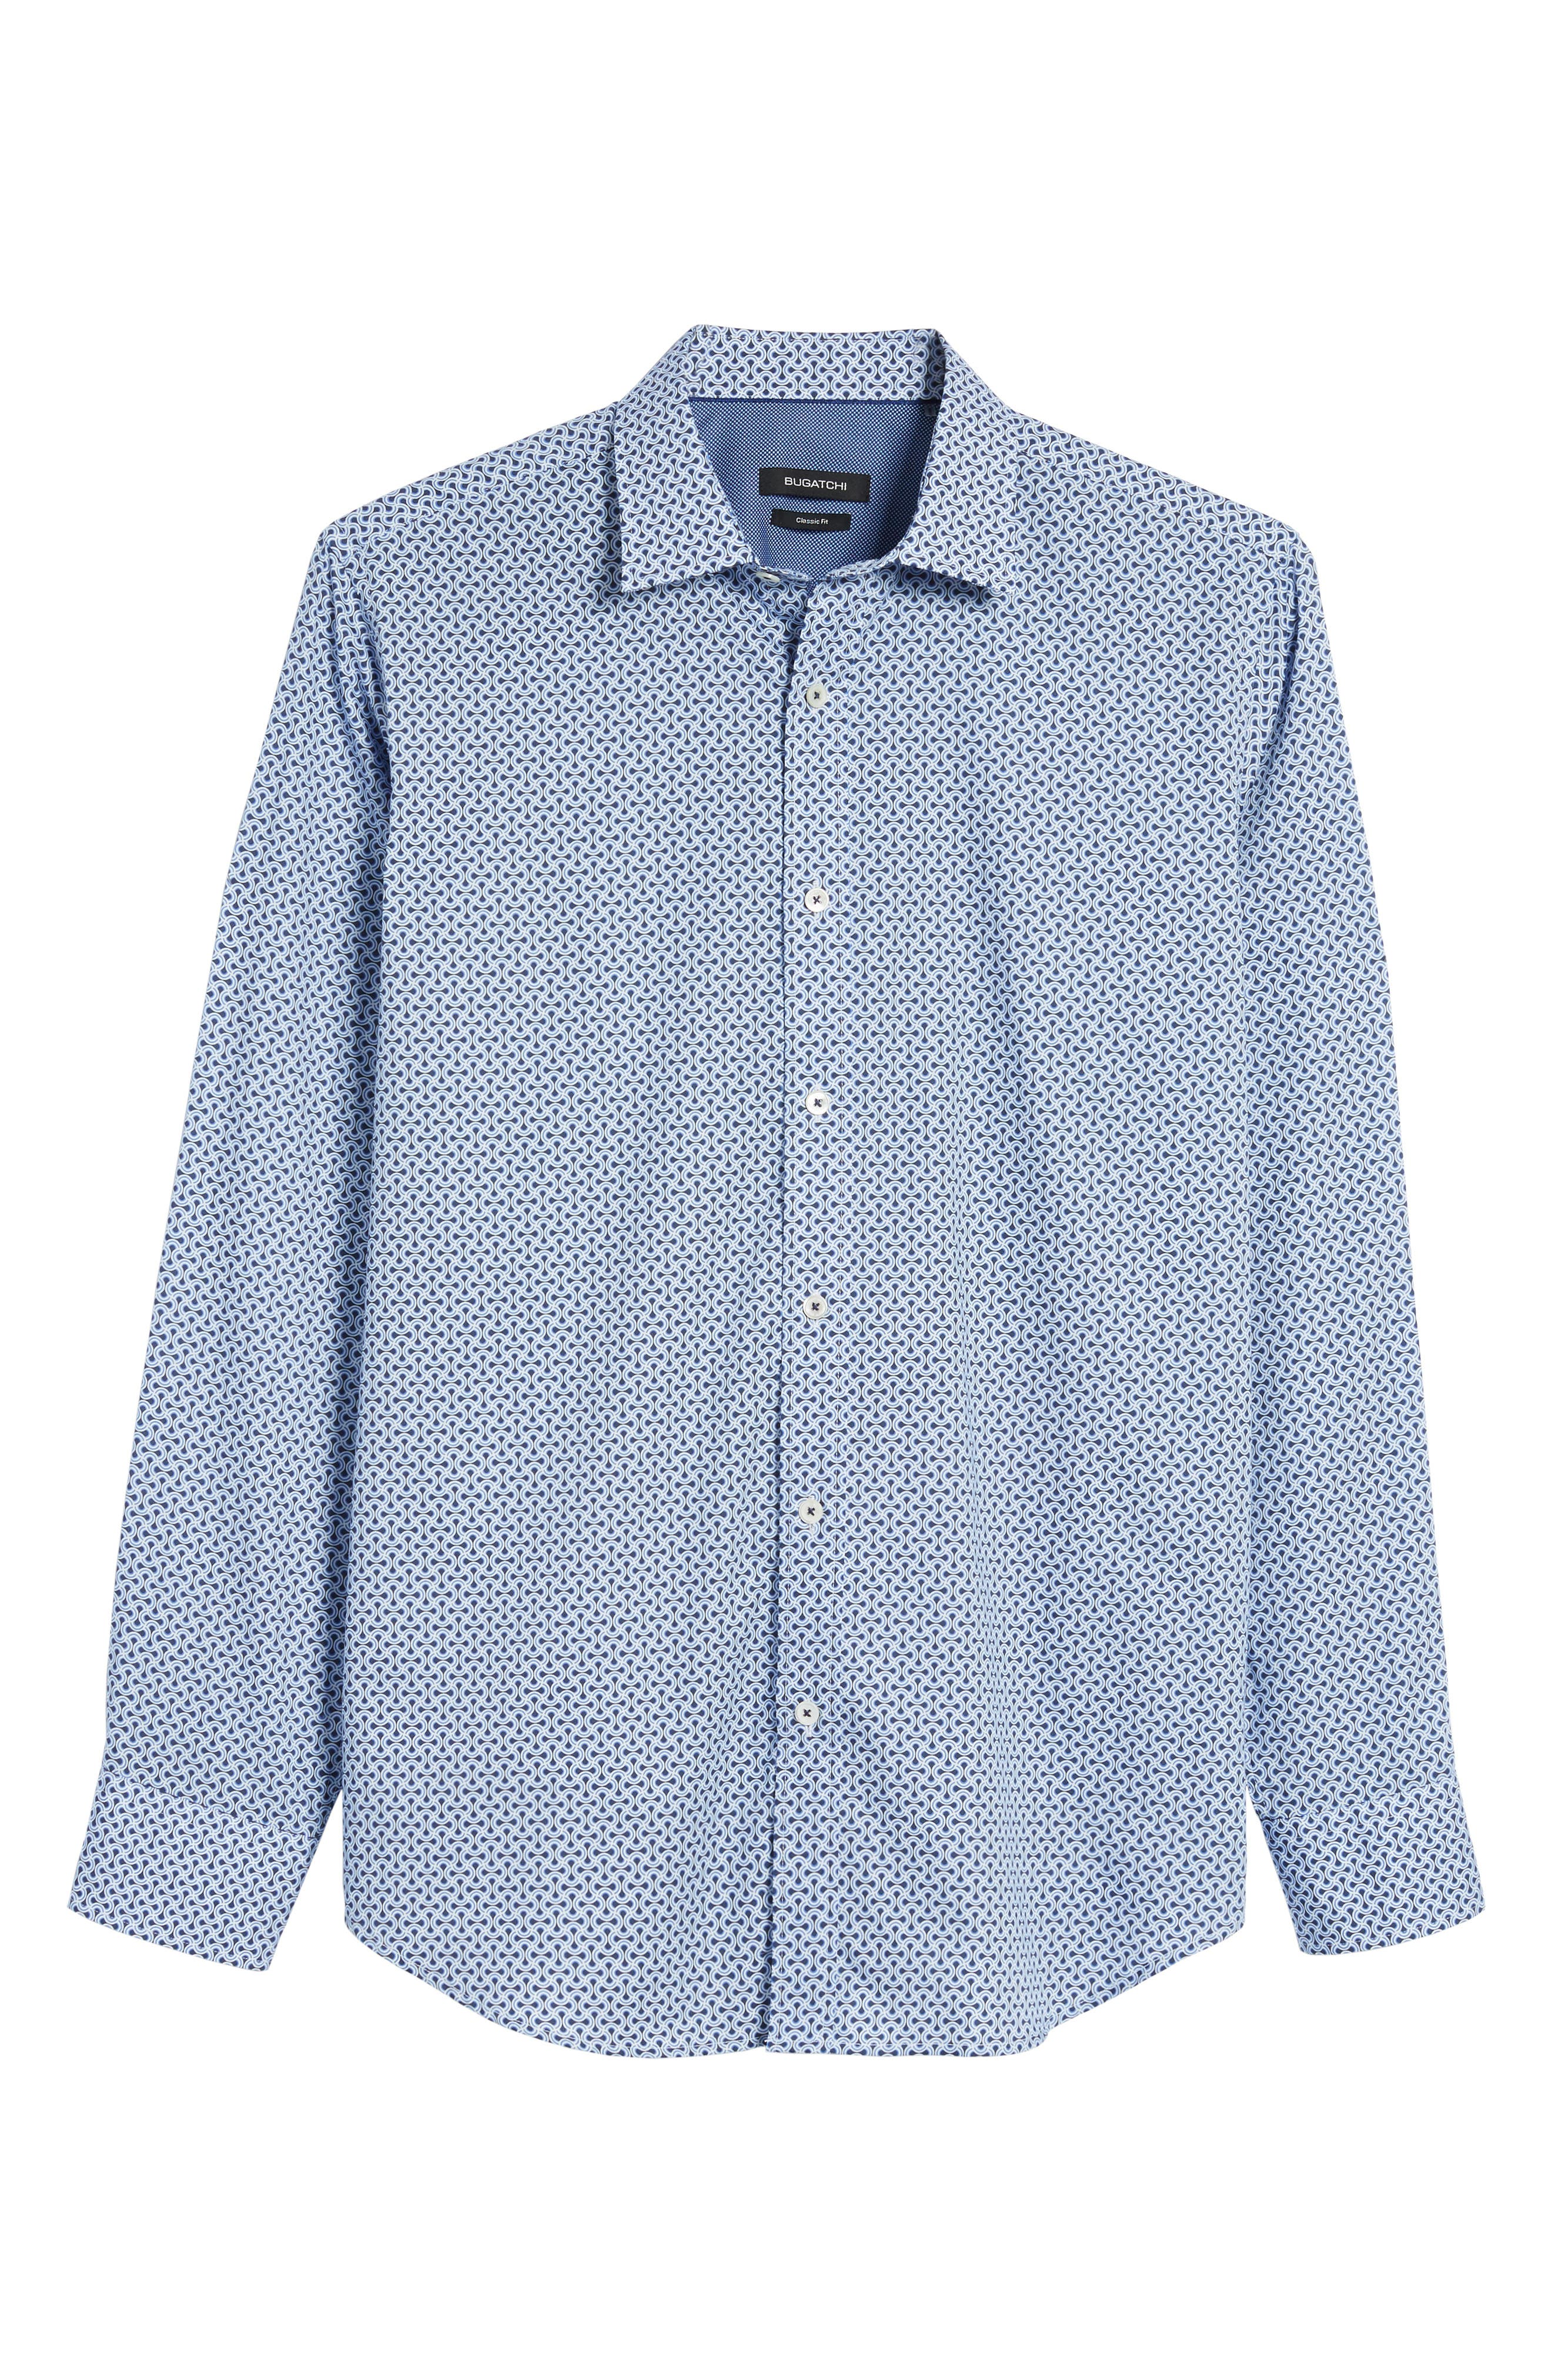 Classic Fit Print Sport Shirt,                             Alternate thumbnail 6, color,                             451